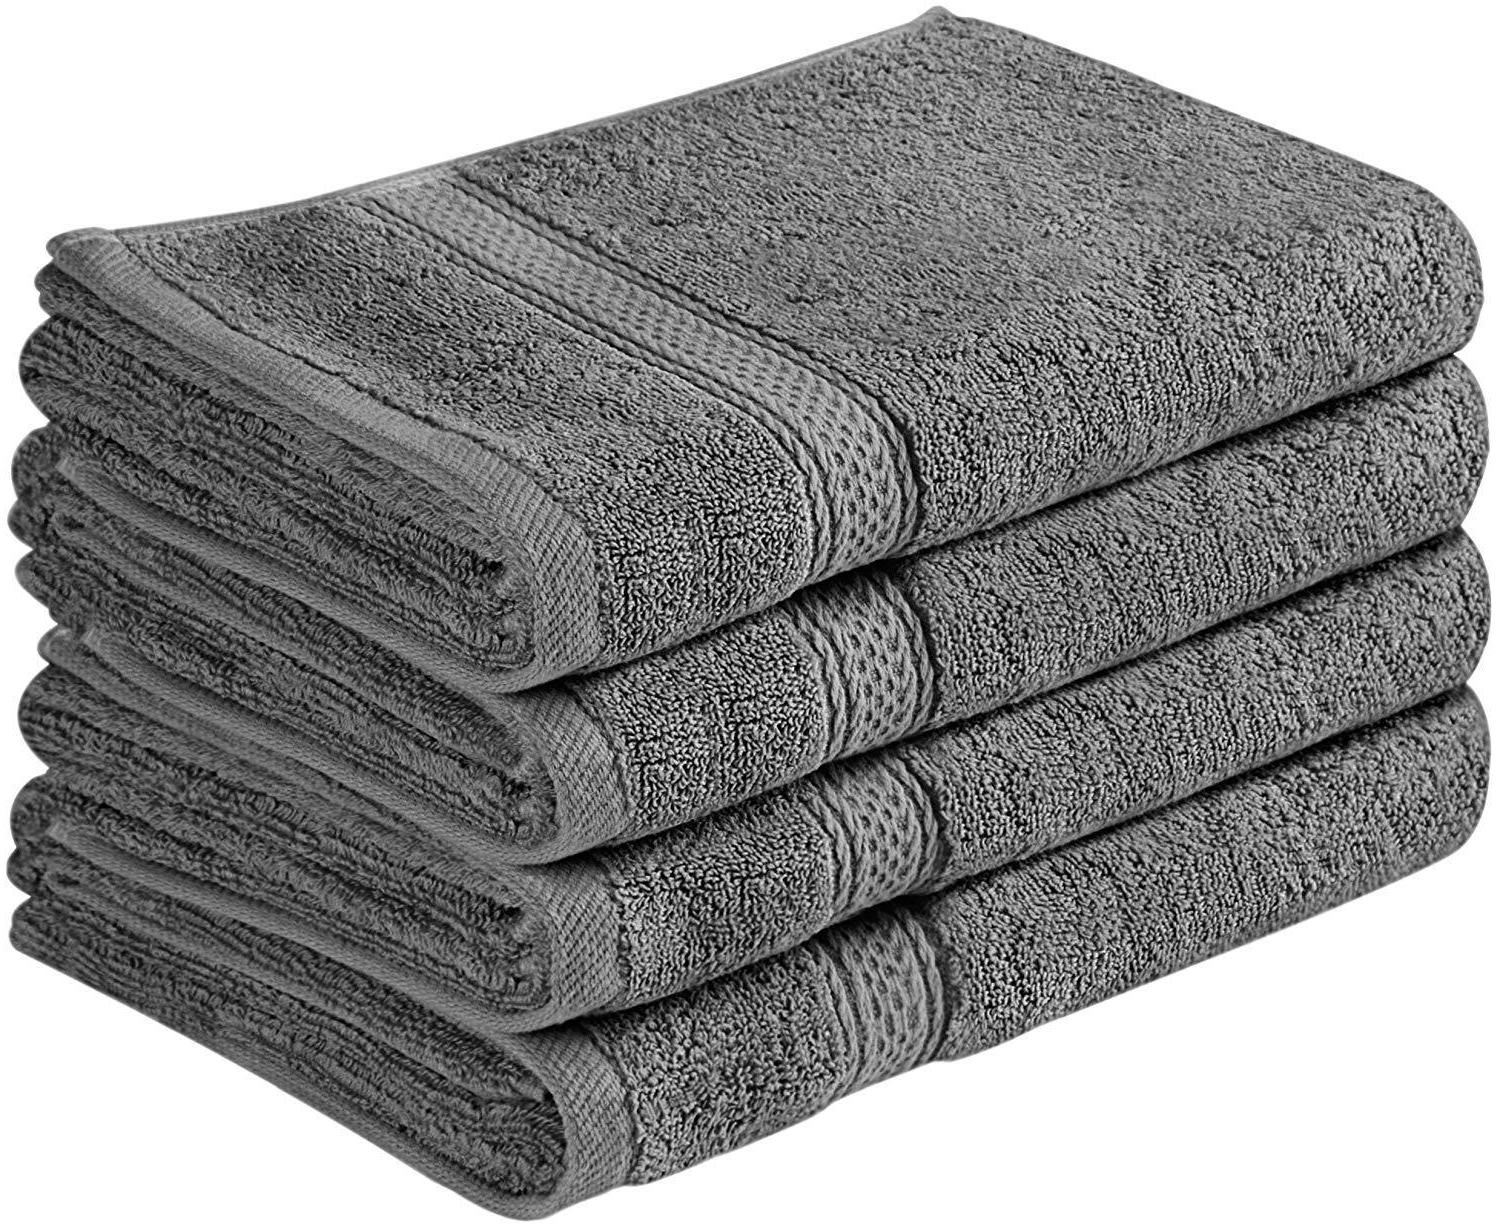 cotton large hand towel set 4 pack